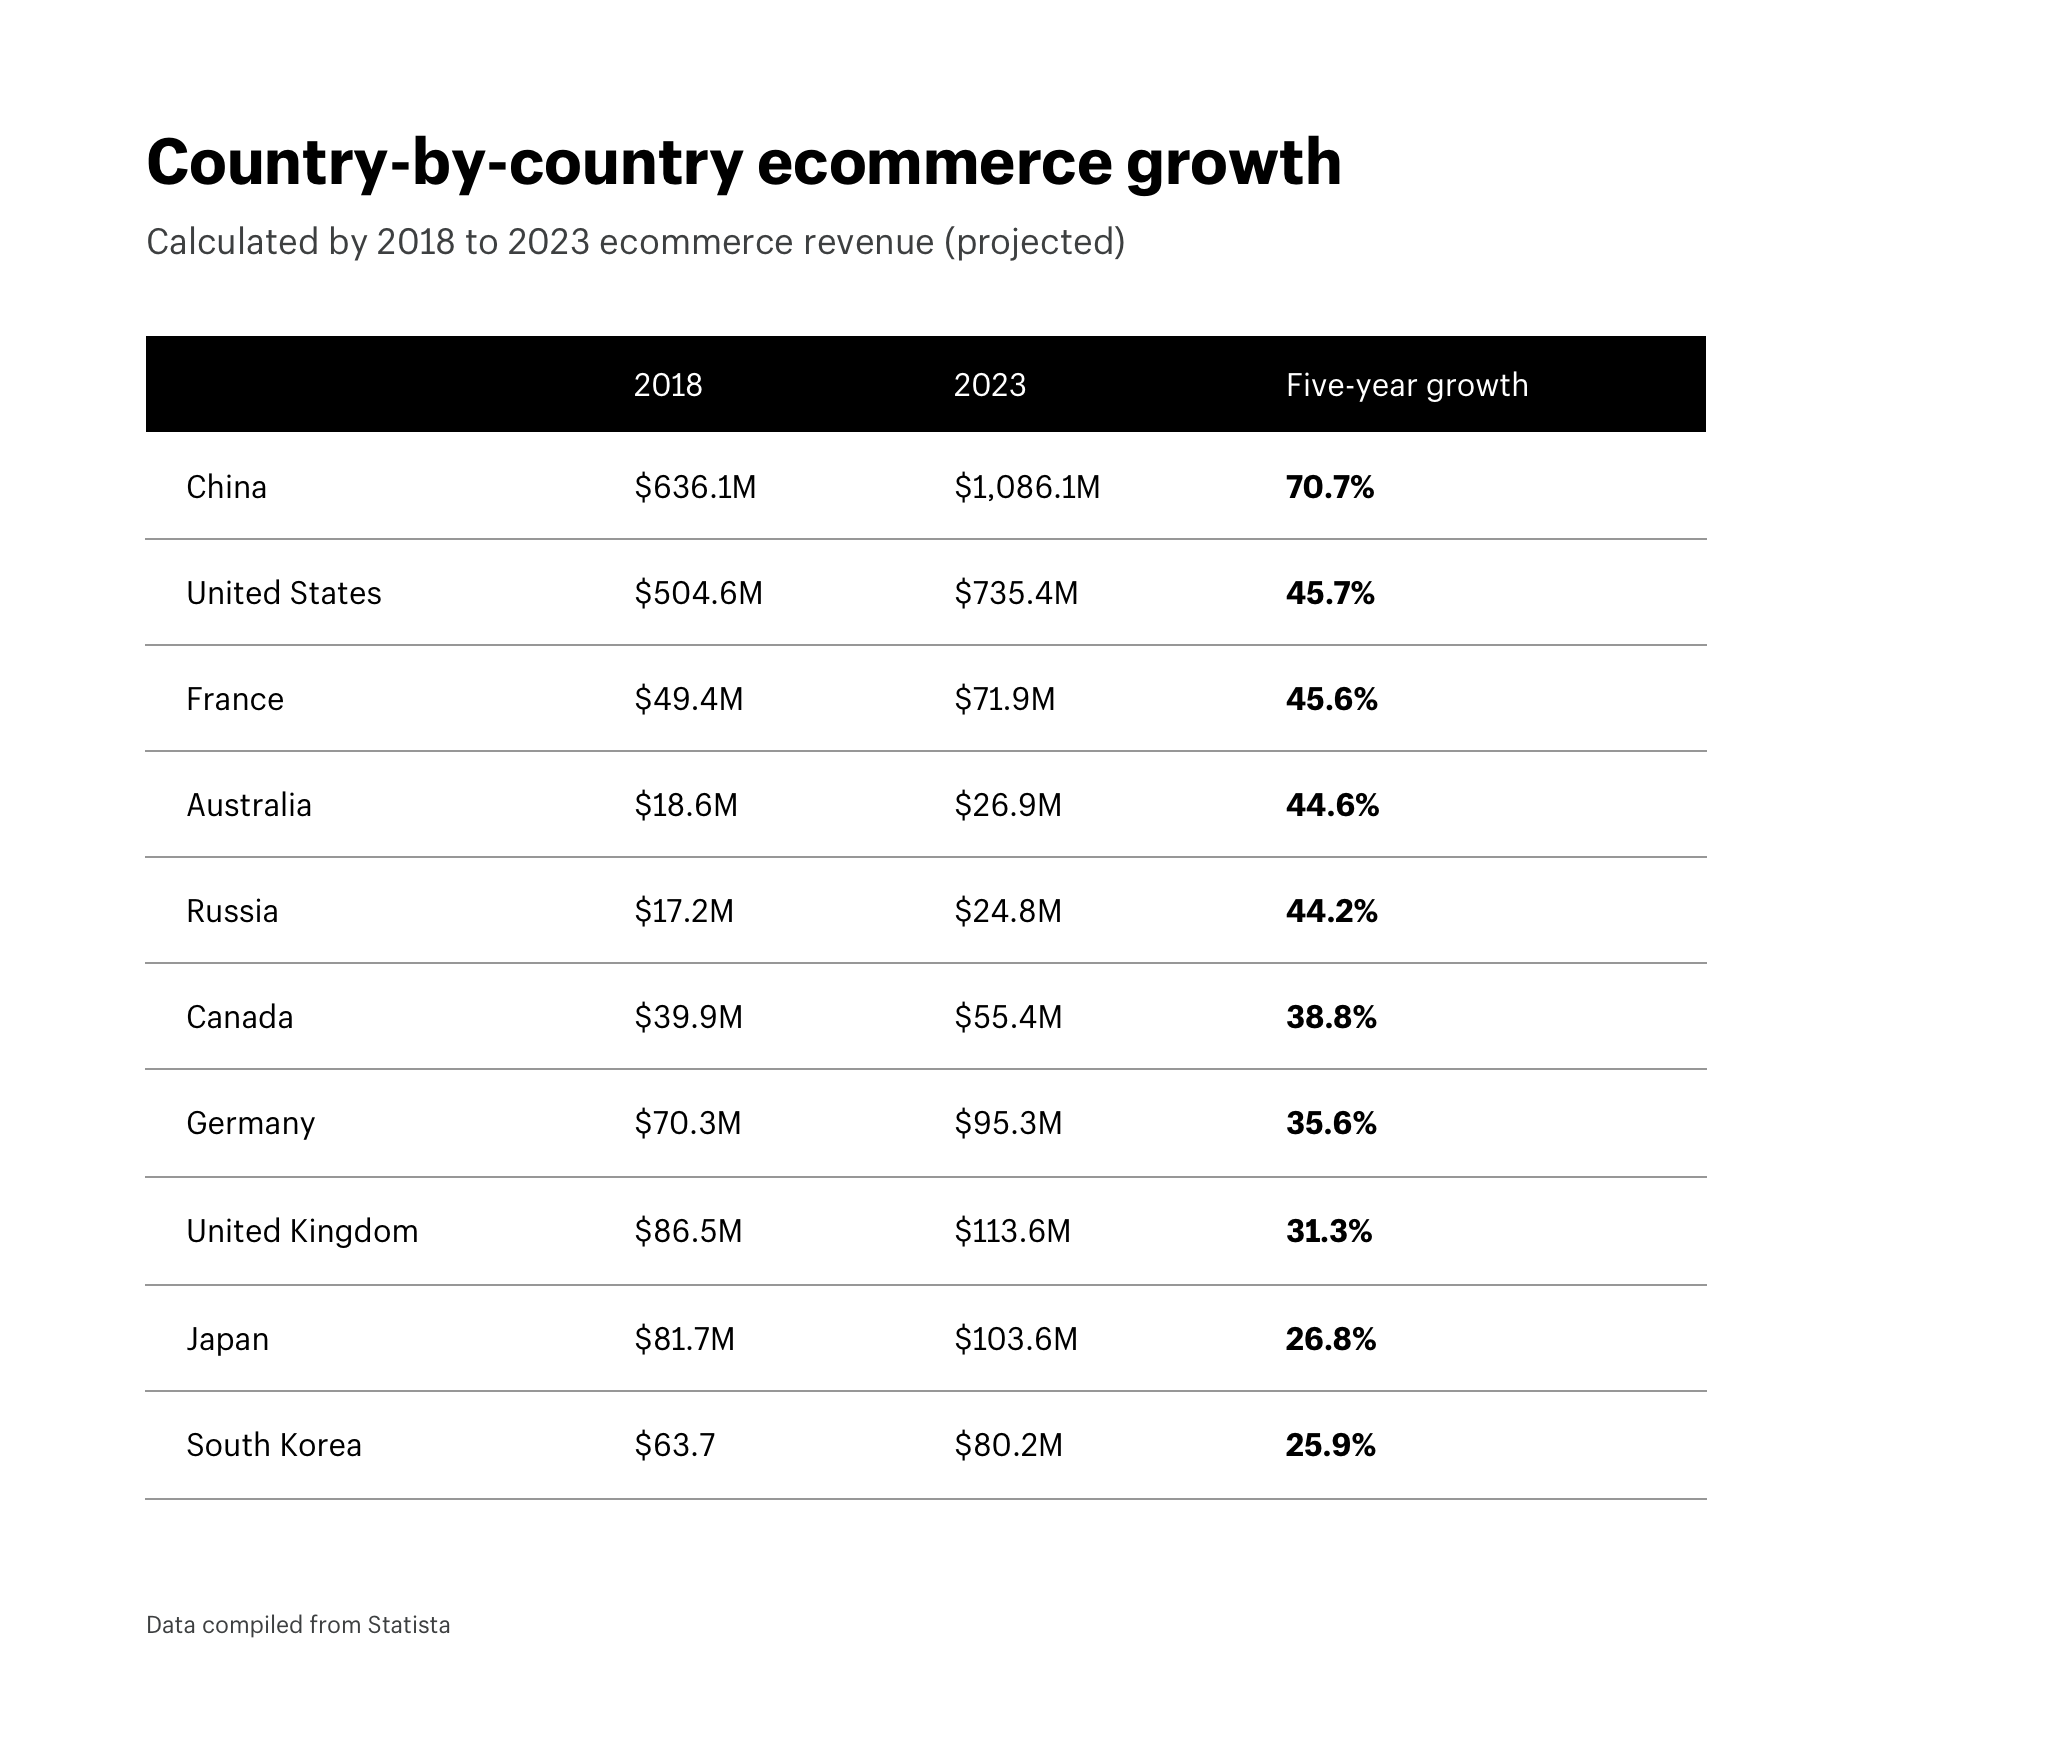 Country-by-country ecommerce growth 2018 to 2023